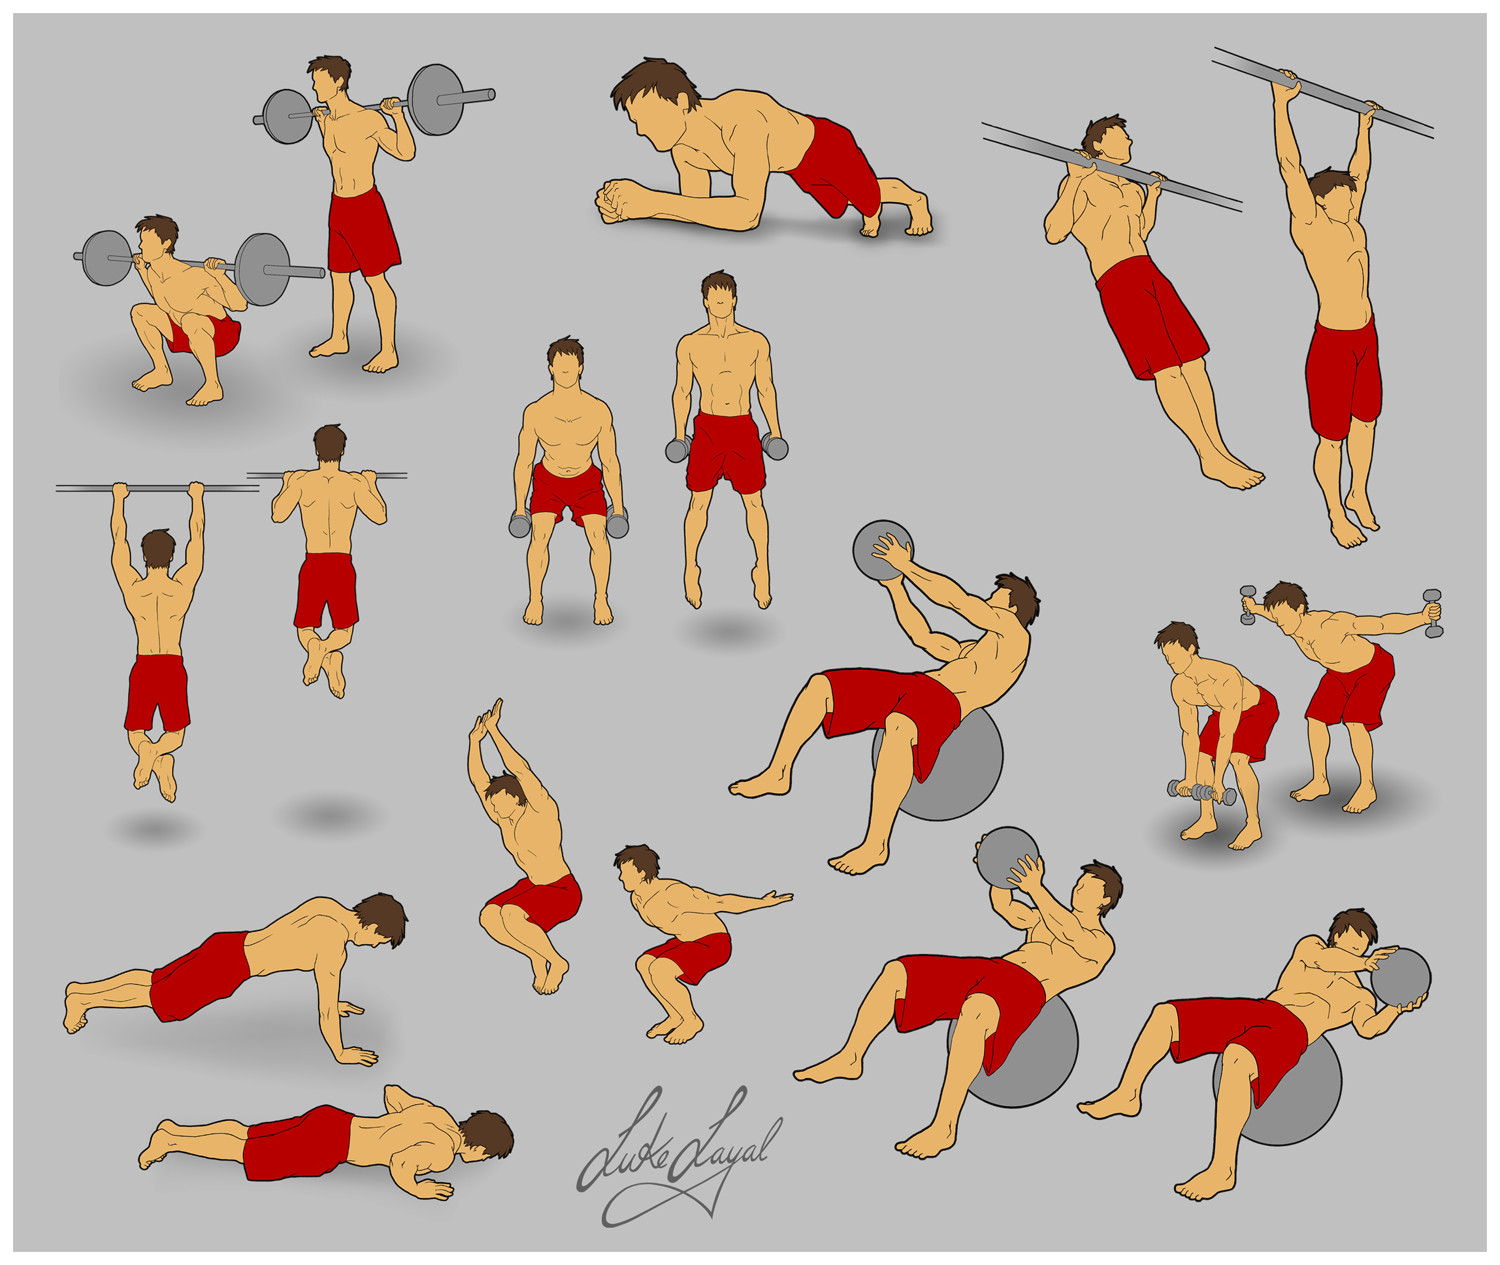 Exercise Diagram 2 by Lo-yal on DeviantArt